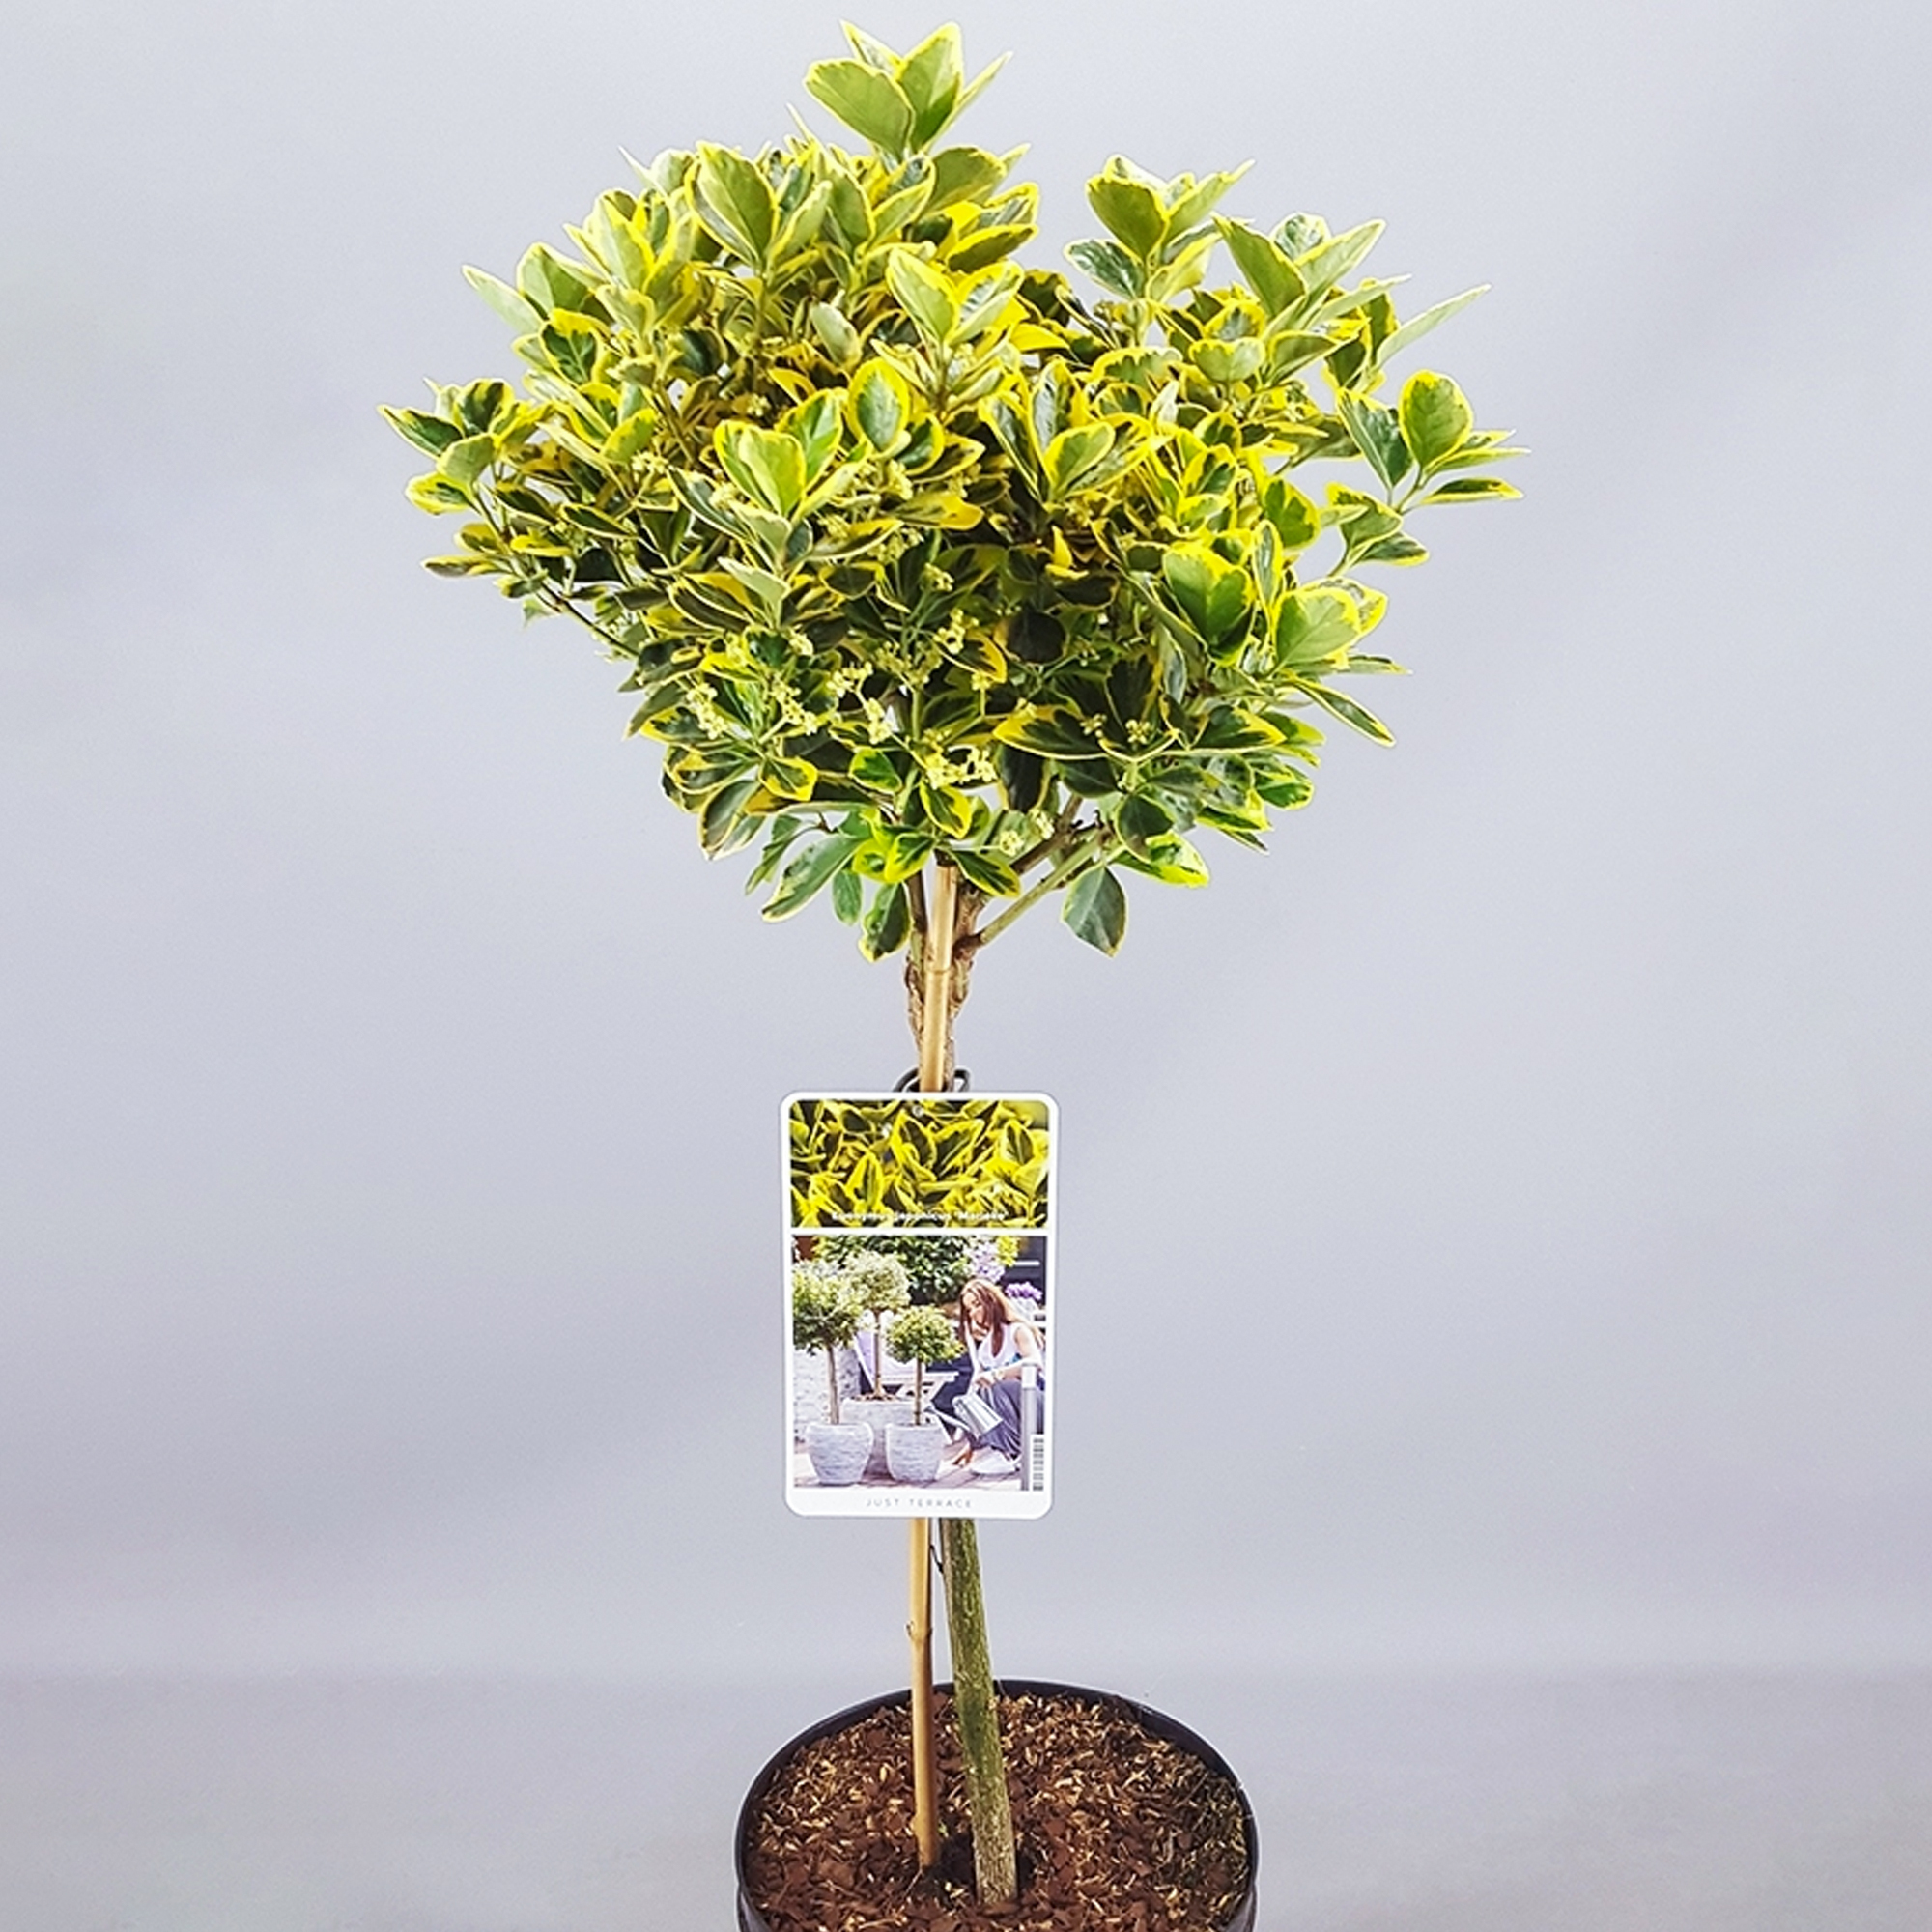 Small Trees For Borders: Standard Stem Potted Trees For